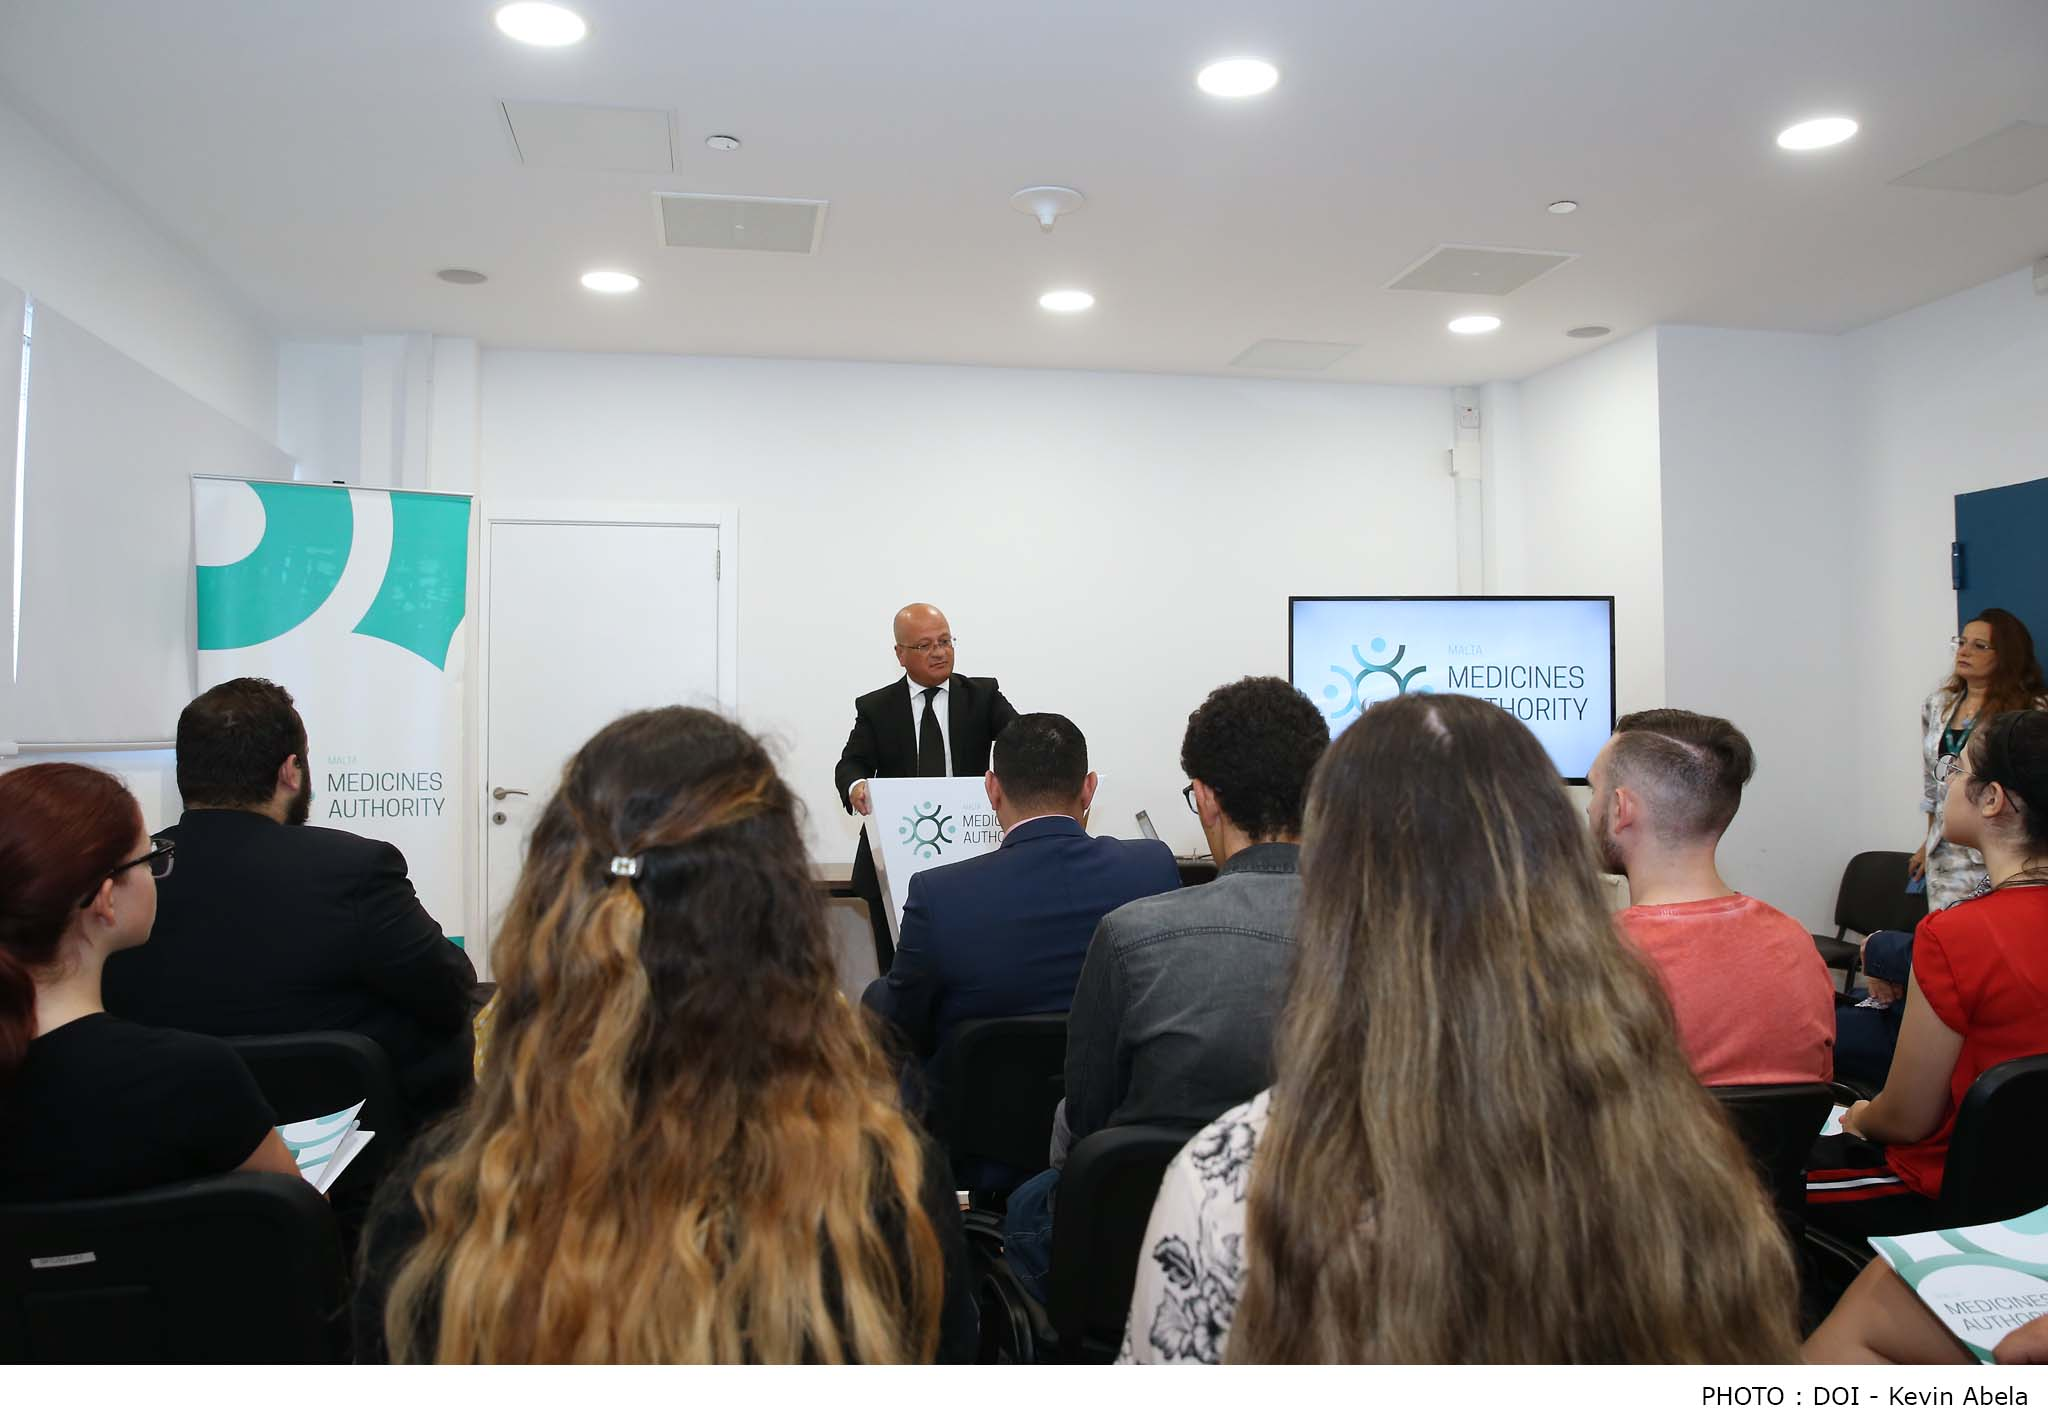 PRESS RELEASE BY THE PARLIAMENTARY SECRETARIAT FOR CONSUMER RIGHTS, PUBLIC CLEANSING AND SUPPORT FOR THE CAPITAL CITY: Parliamentary Secretary Deo Debattista addresses the Open Day for Pharmaceutical Sciences and Pharmaceutical Technologists